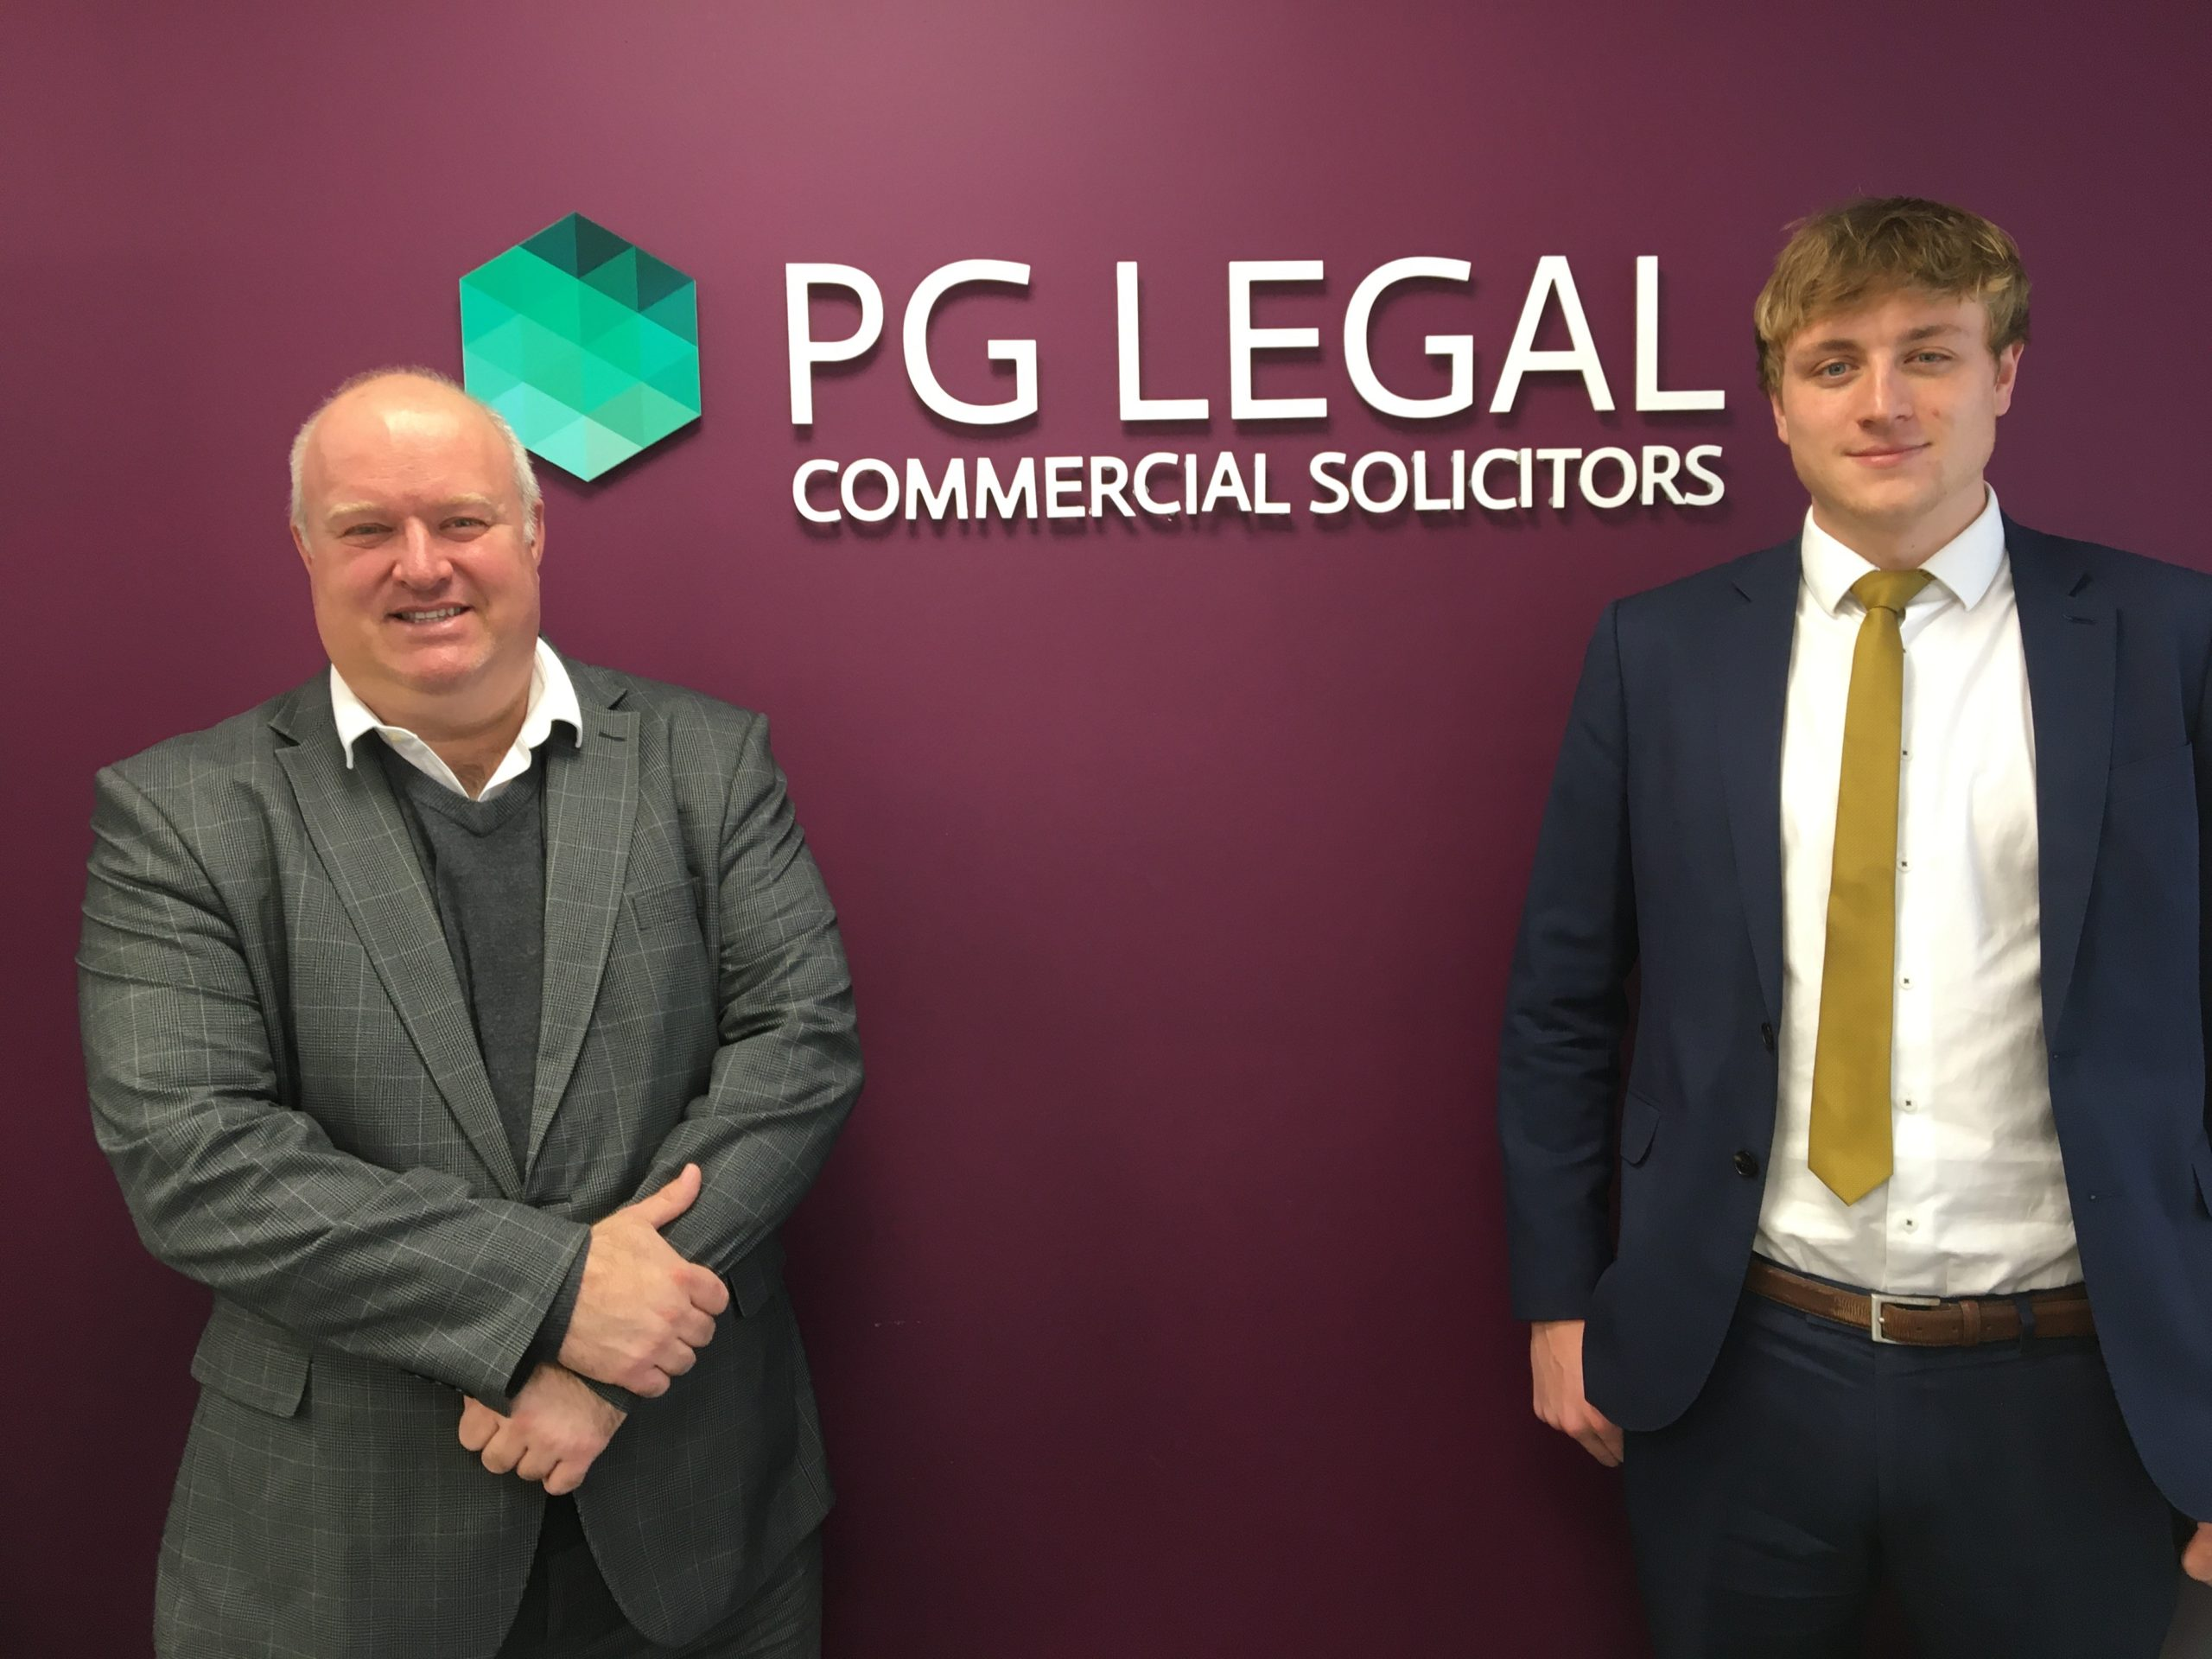 PG Legal trainee qualifies as solicitor